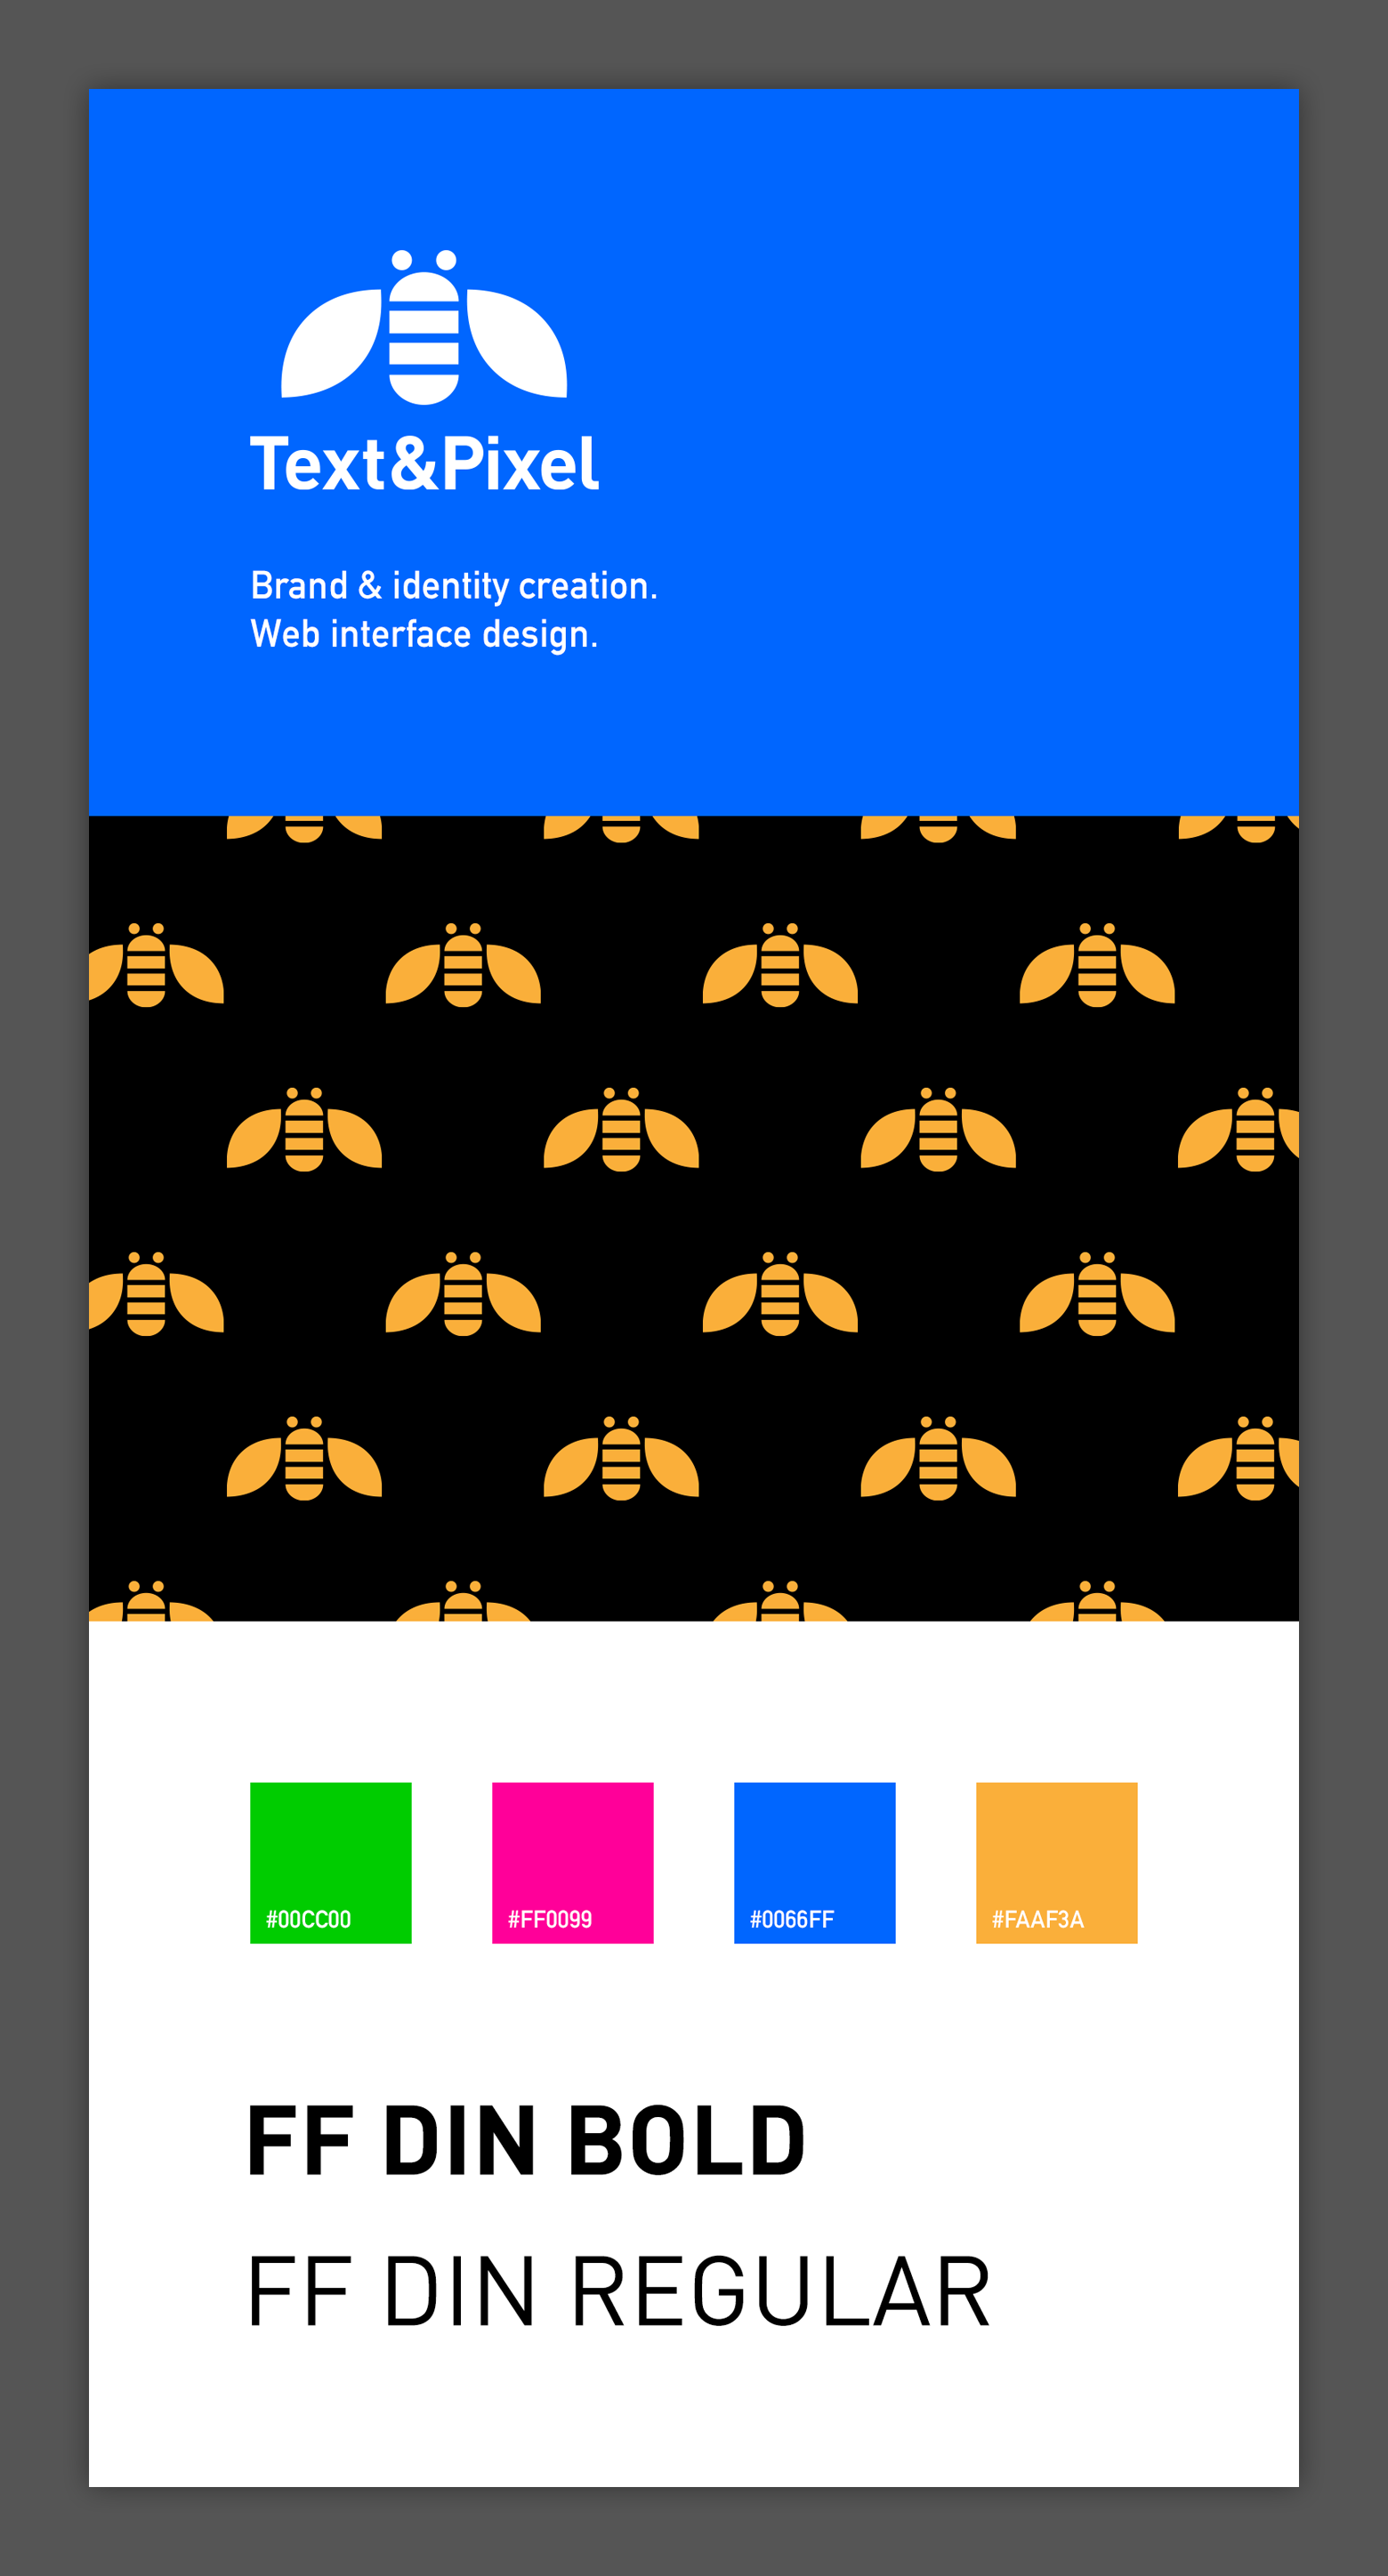 Text&Pixel identity card with logo, primary colours and a pattern of goldan bees against a black background